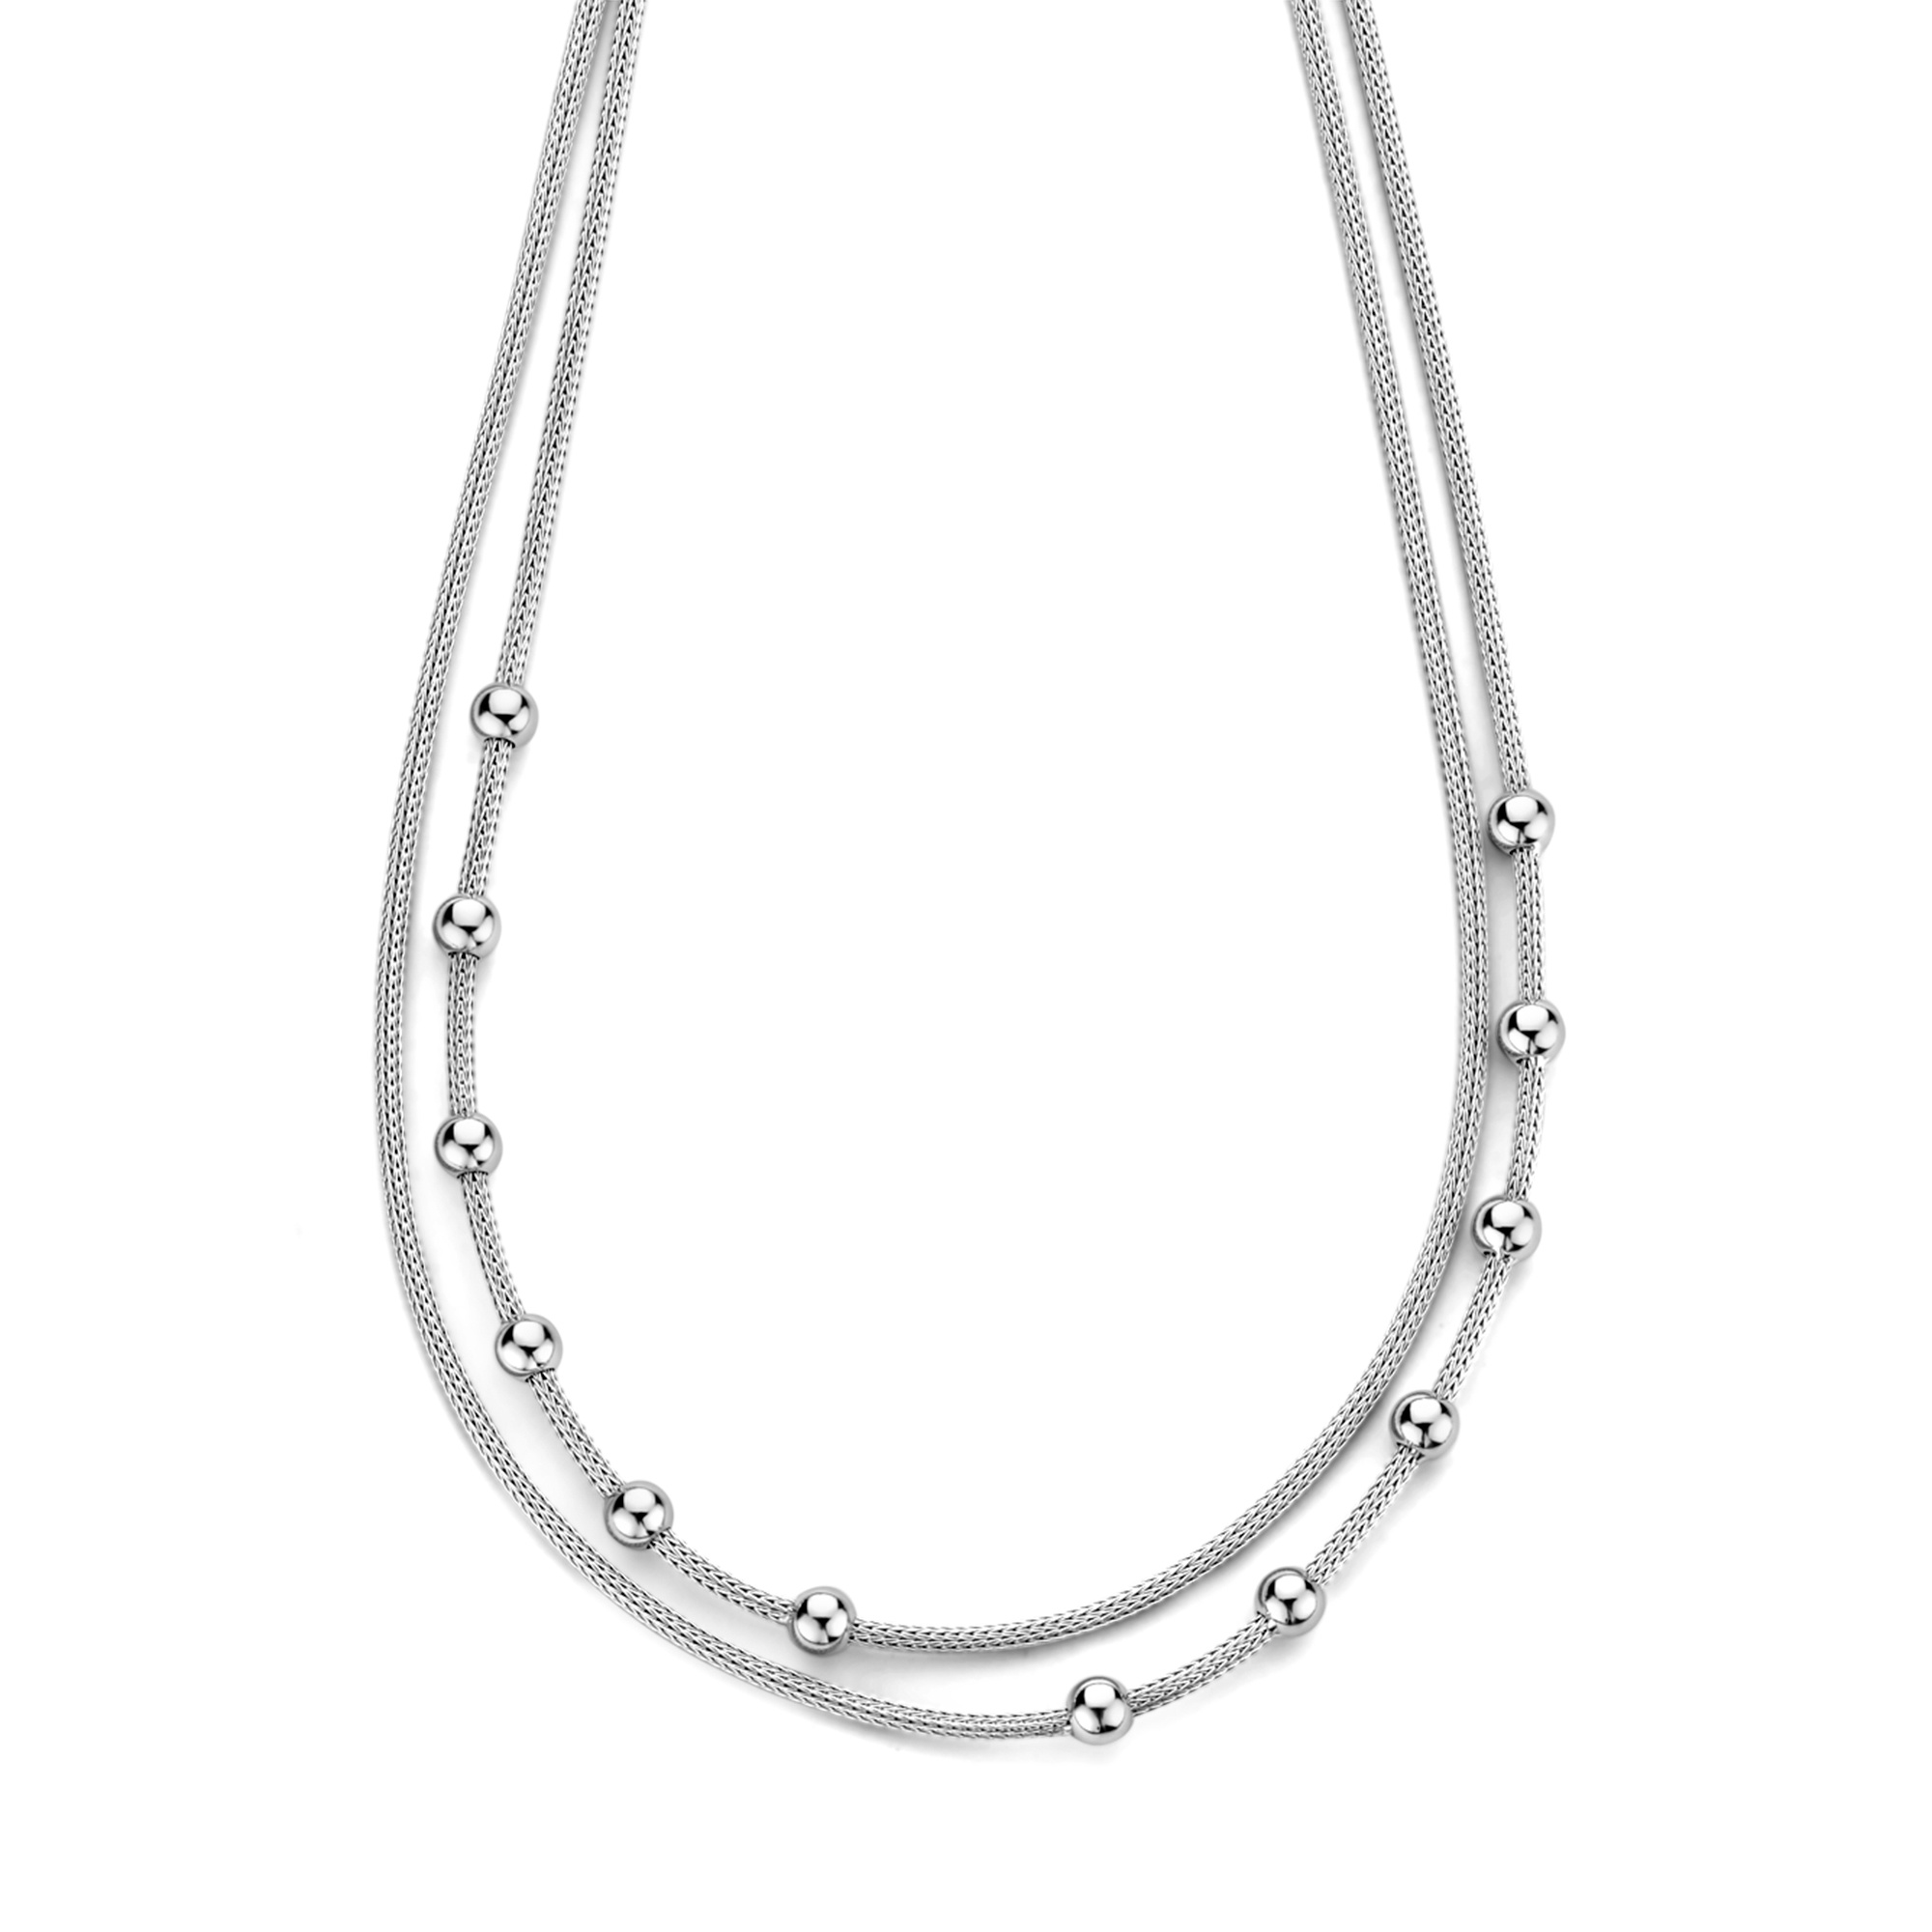 Selected Jewels Léna Nina 925 sterling silver double necklace with spheres